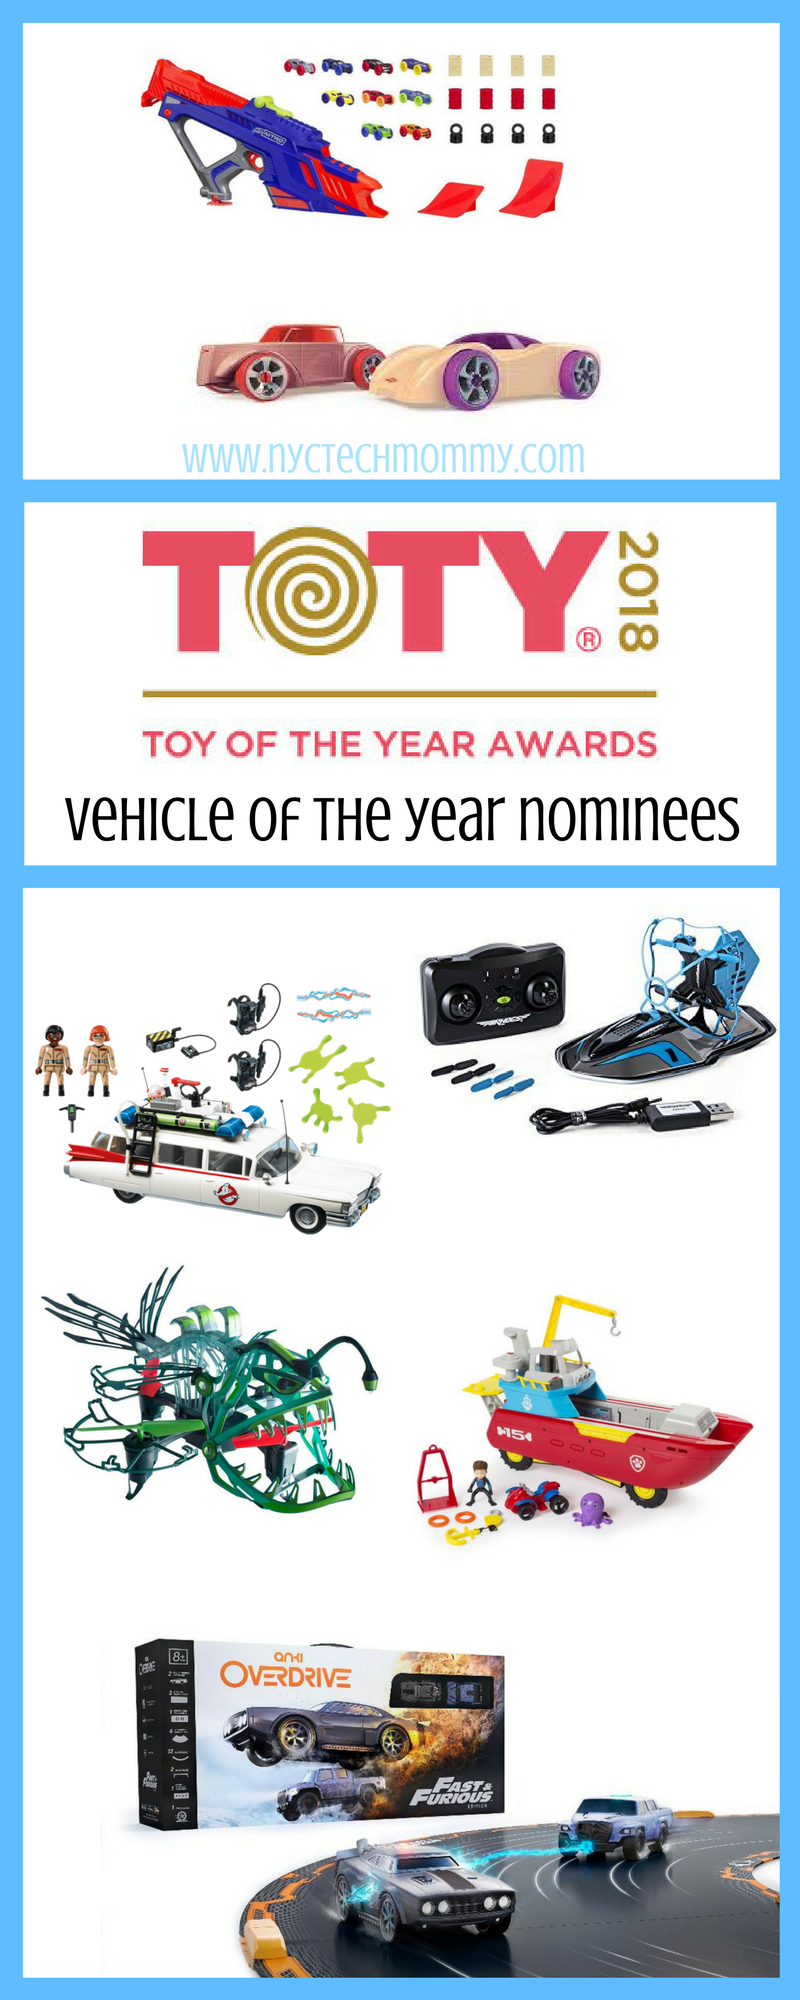 Learn about the 2018 Vehicle Toy of the Year Award Nominees and cast a vote for your favorite at towards.org #TOTY2018